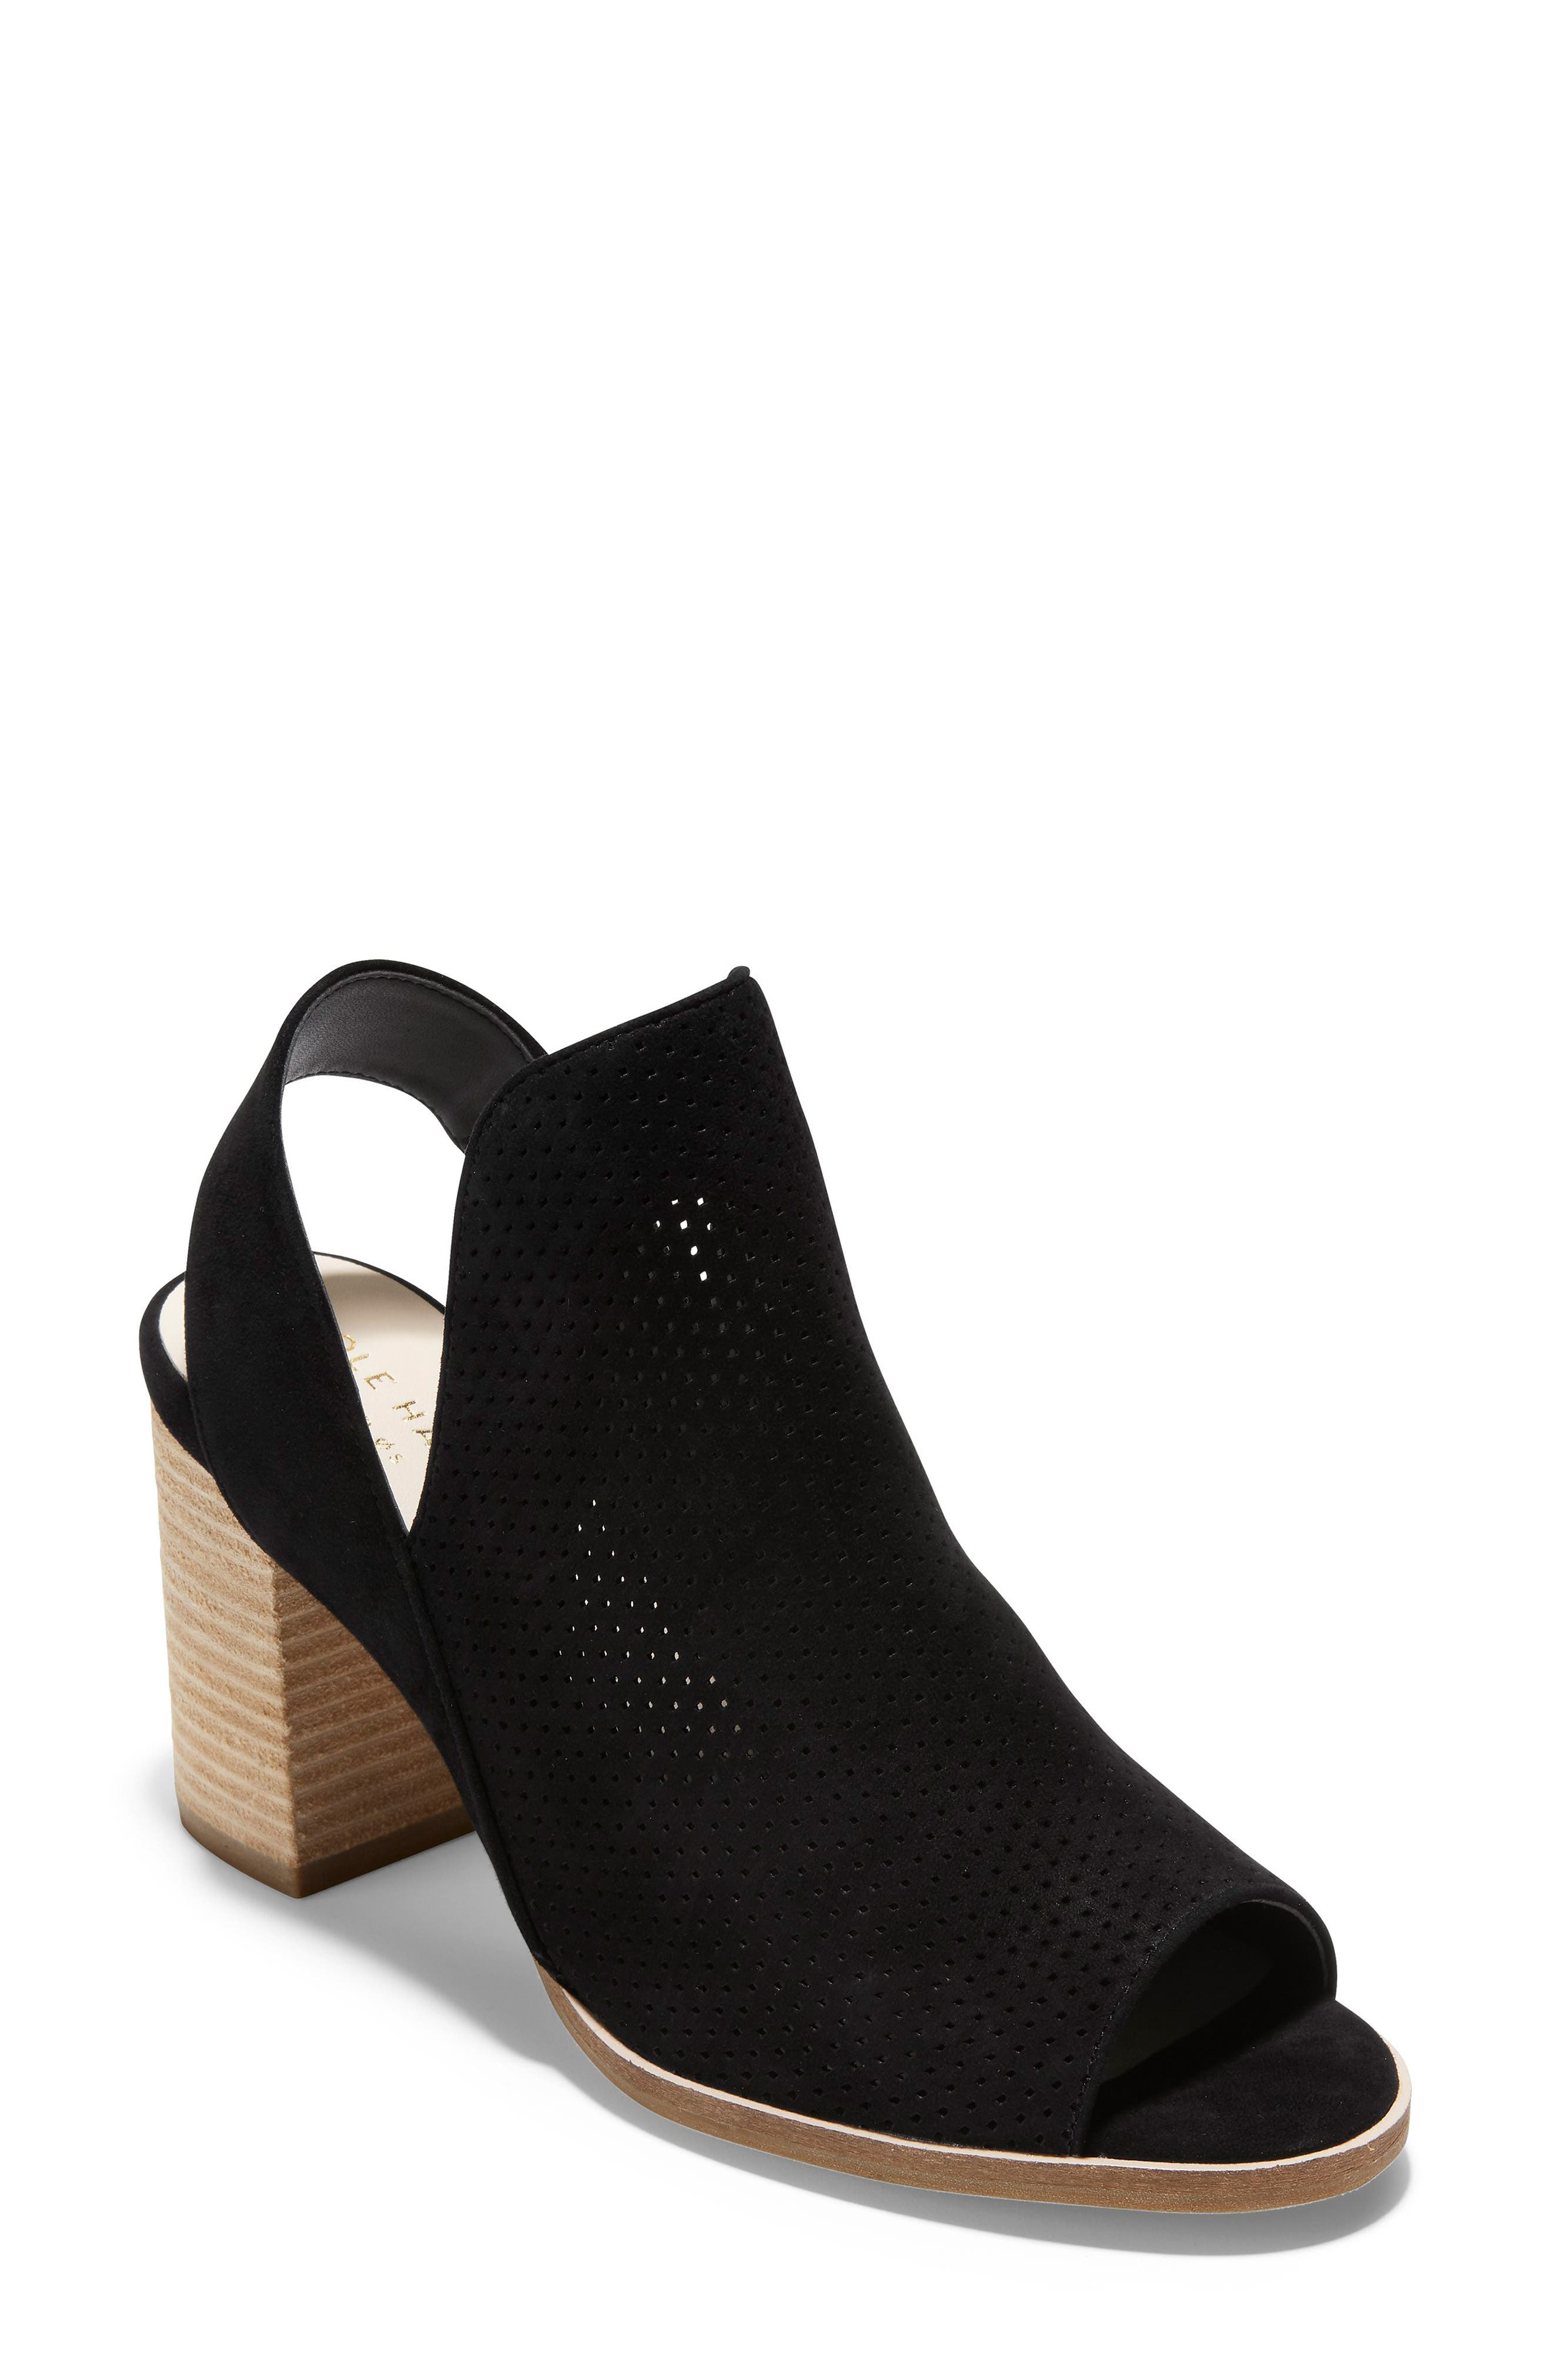 COLE HAAN, Callista Perforated Slingback Sandal, Main thumbnail 1, color, BLACK PERF SUEDE